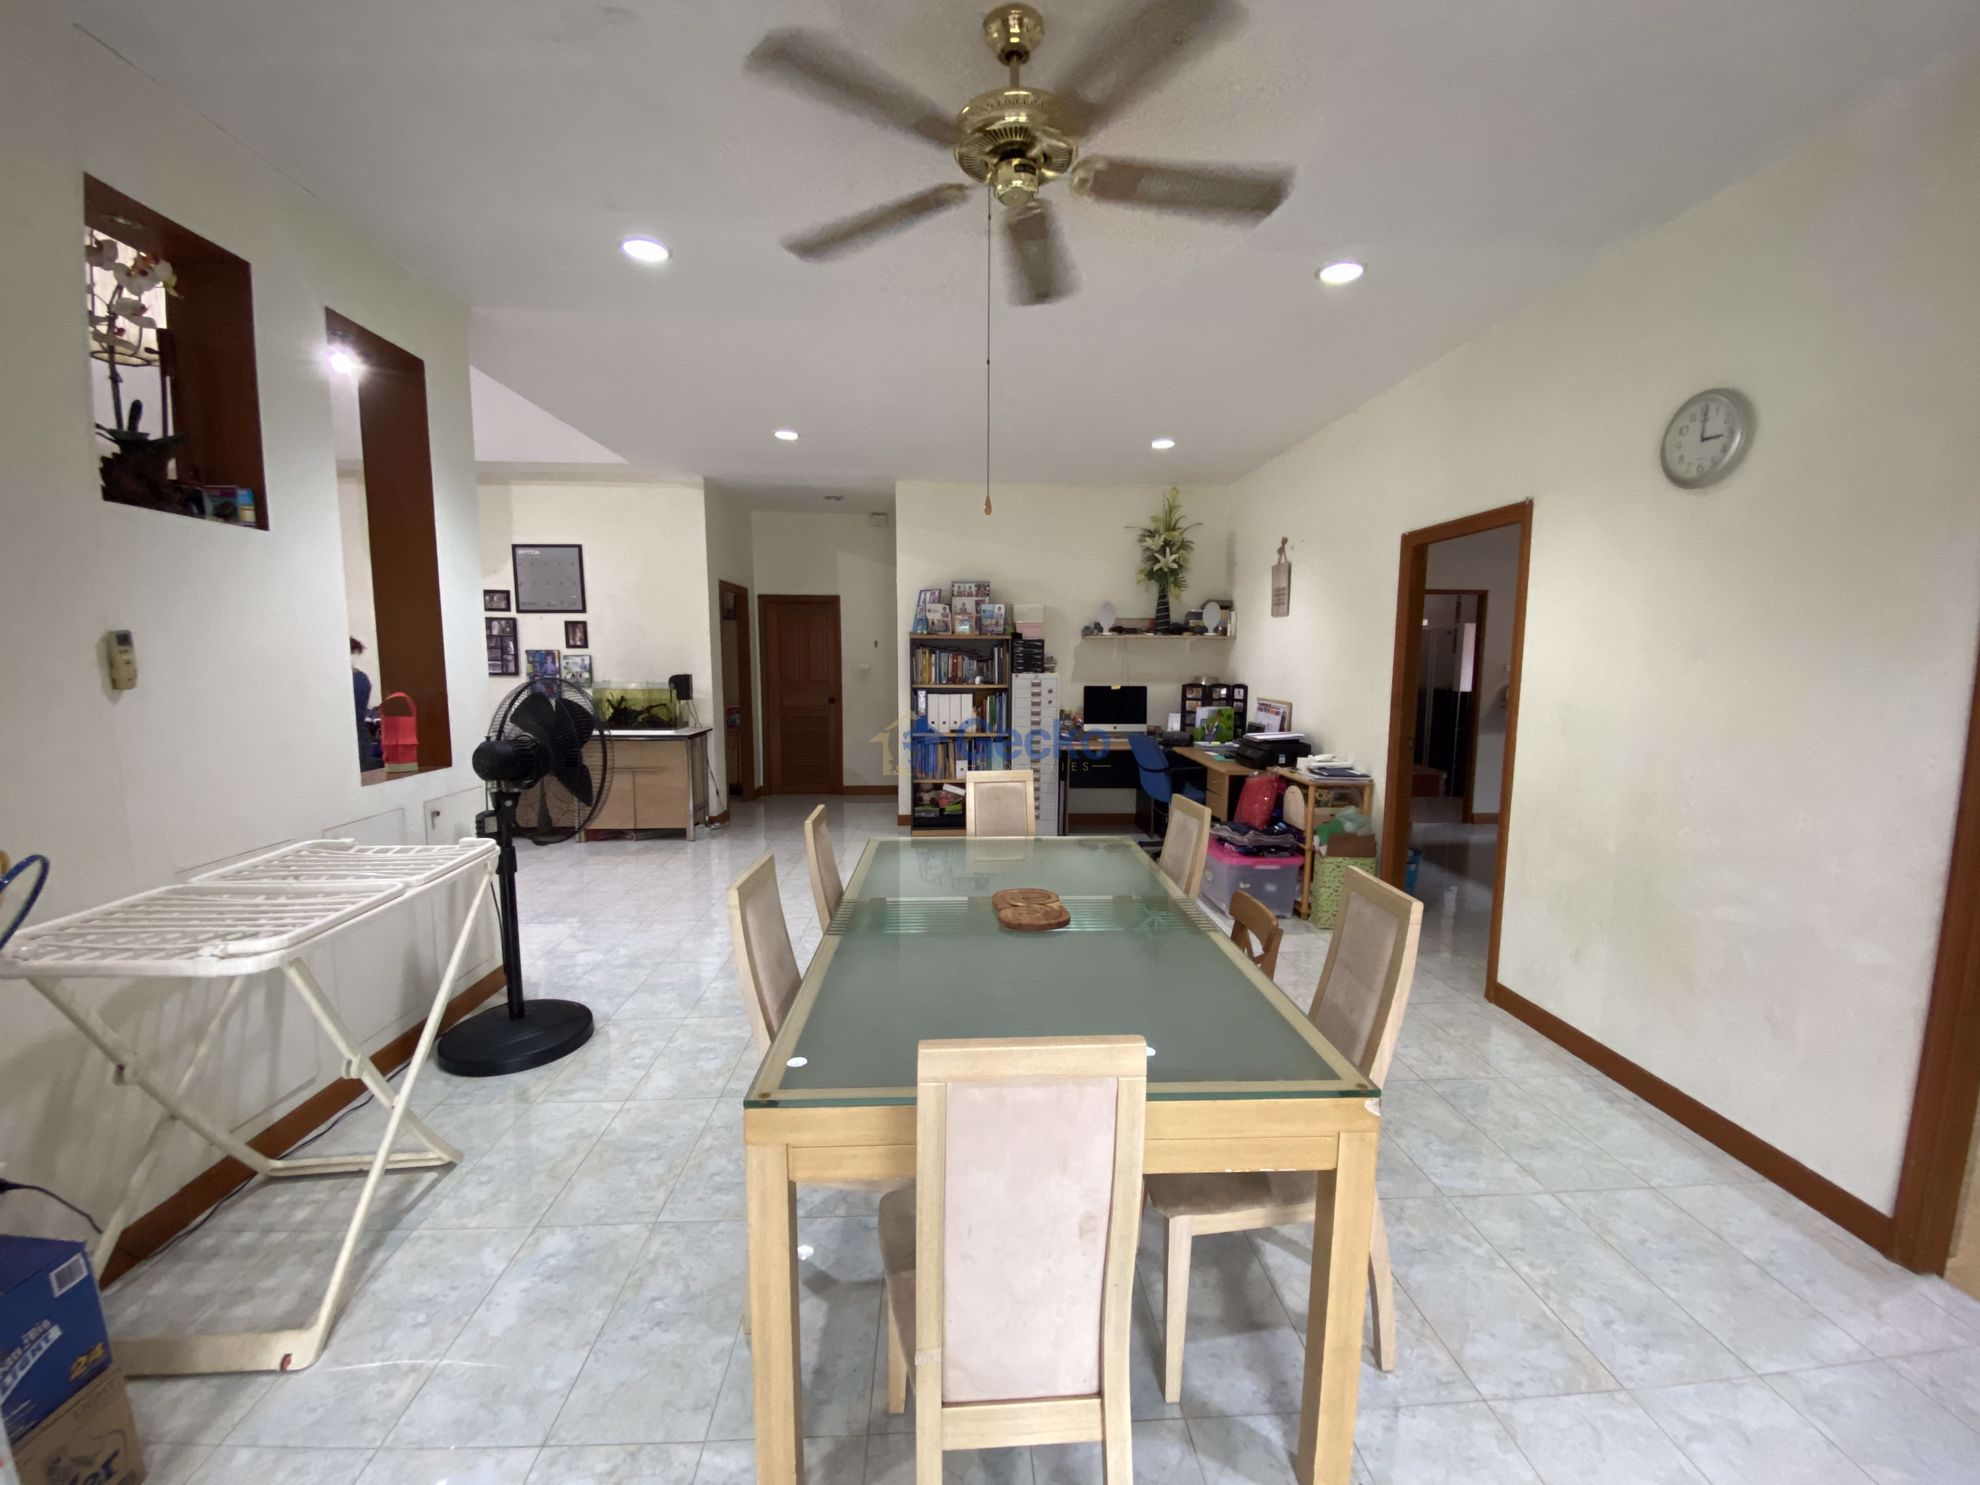 Picture of 3 Bedrooms bed in House in SP Village 3 in East Pattaya H009068